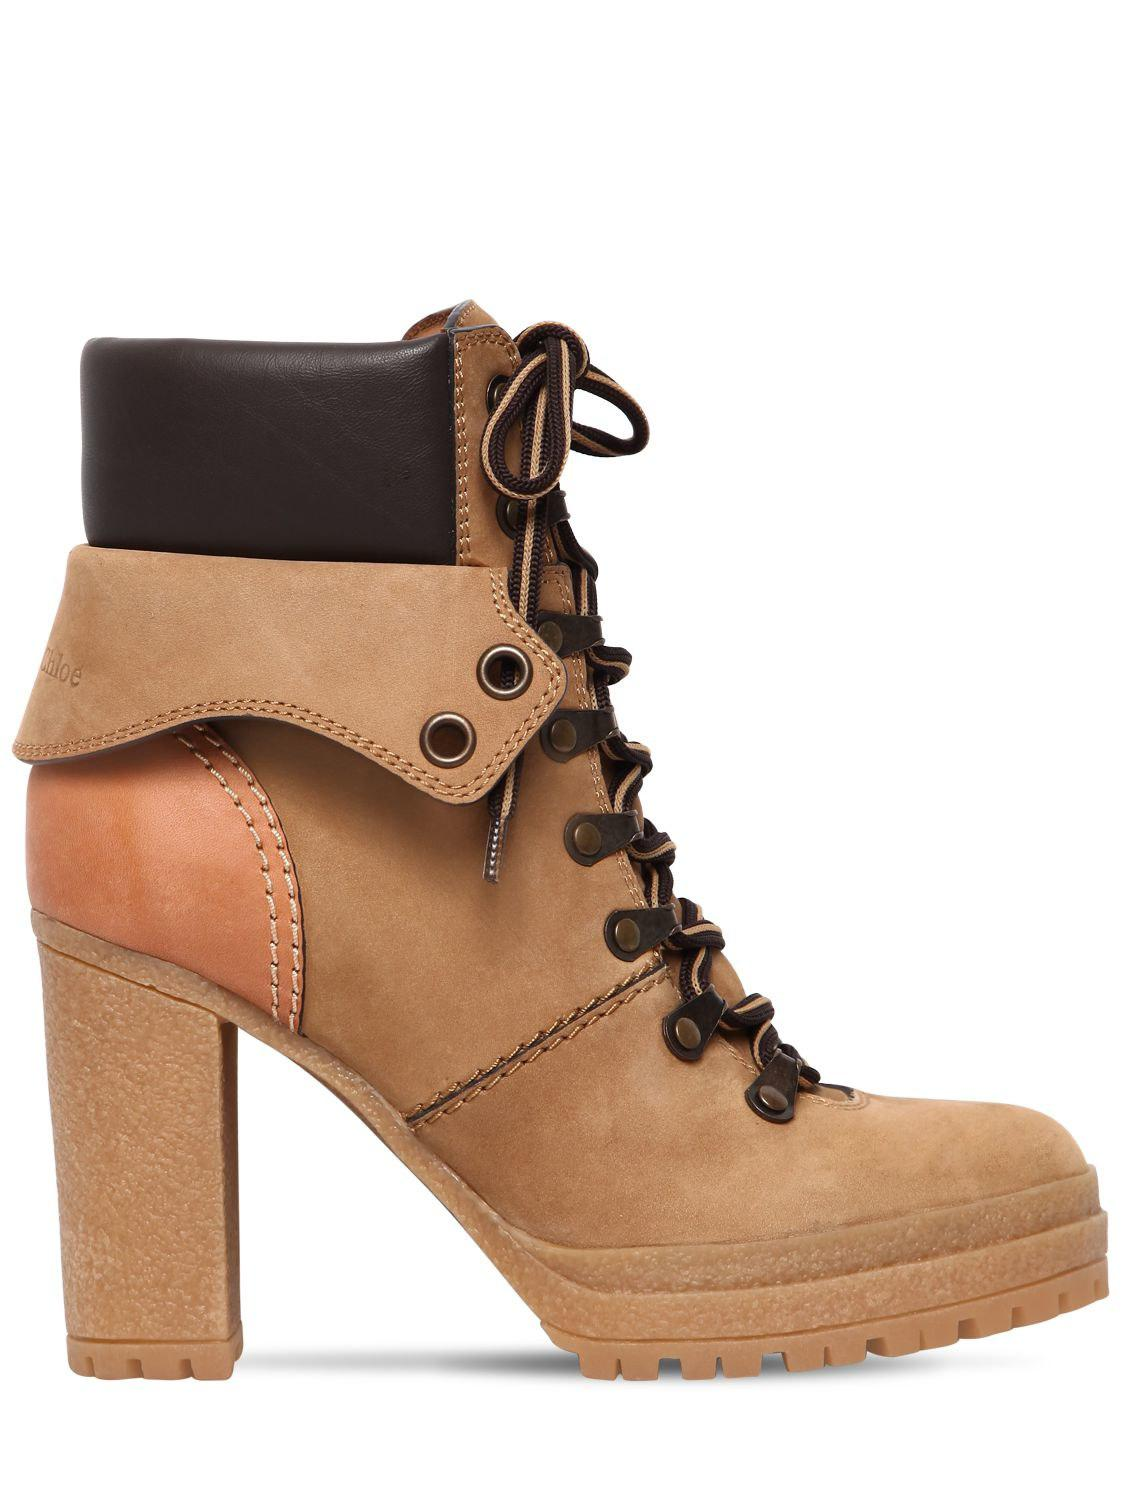 800e045387e4f Lyst - Botas De Montaña De Ante 100mm See By Chloé de color Marrón